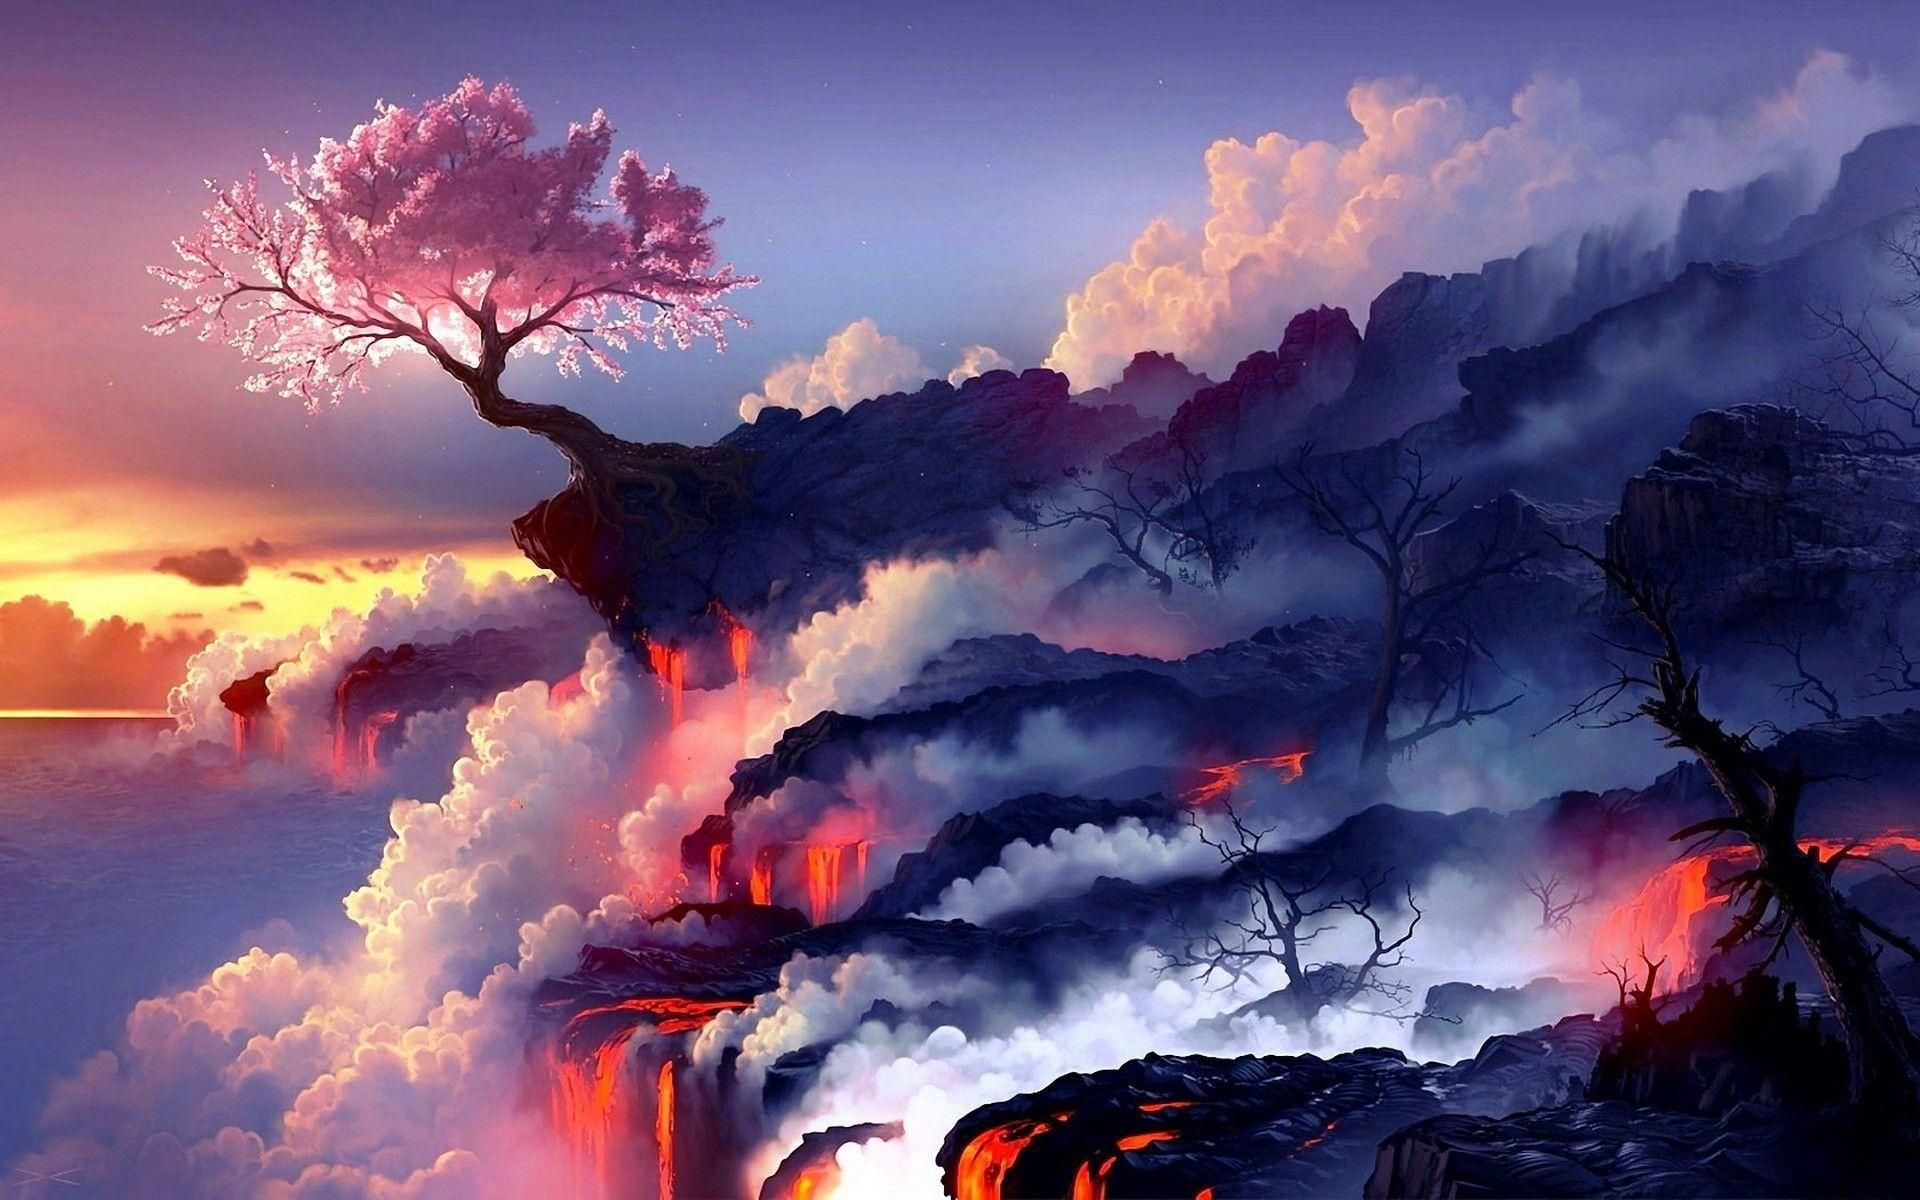 4k Resolution Game Wallpaper 23 6770 Images HD Wallpapers ... | 4k Wallpapers | Anime scenery ...